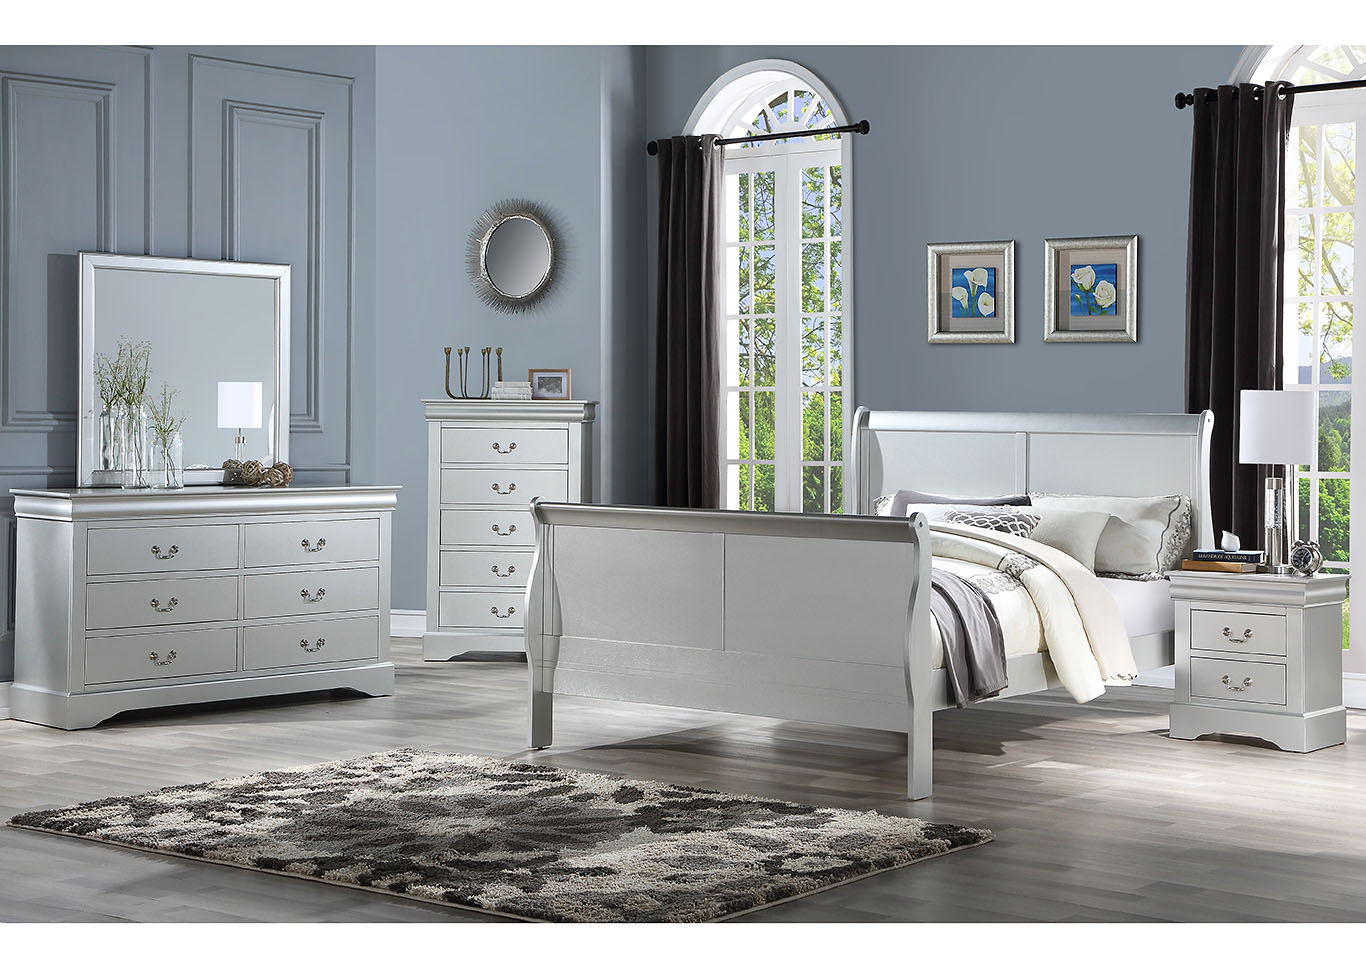 Louis Philippe Iii Platinum Queen Bed Express Furniture Outlet